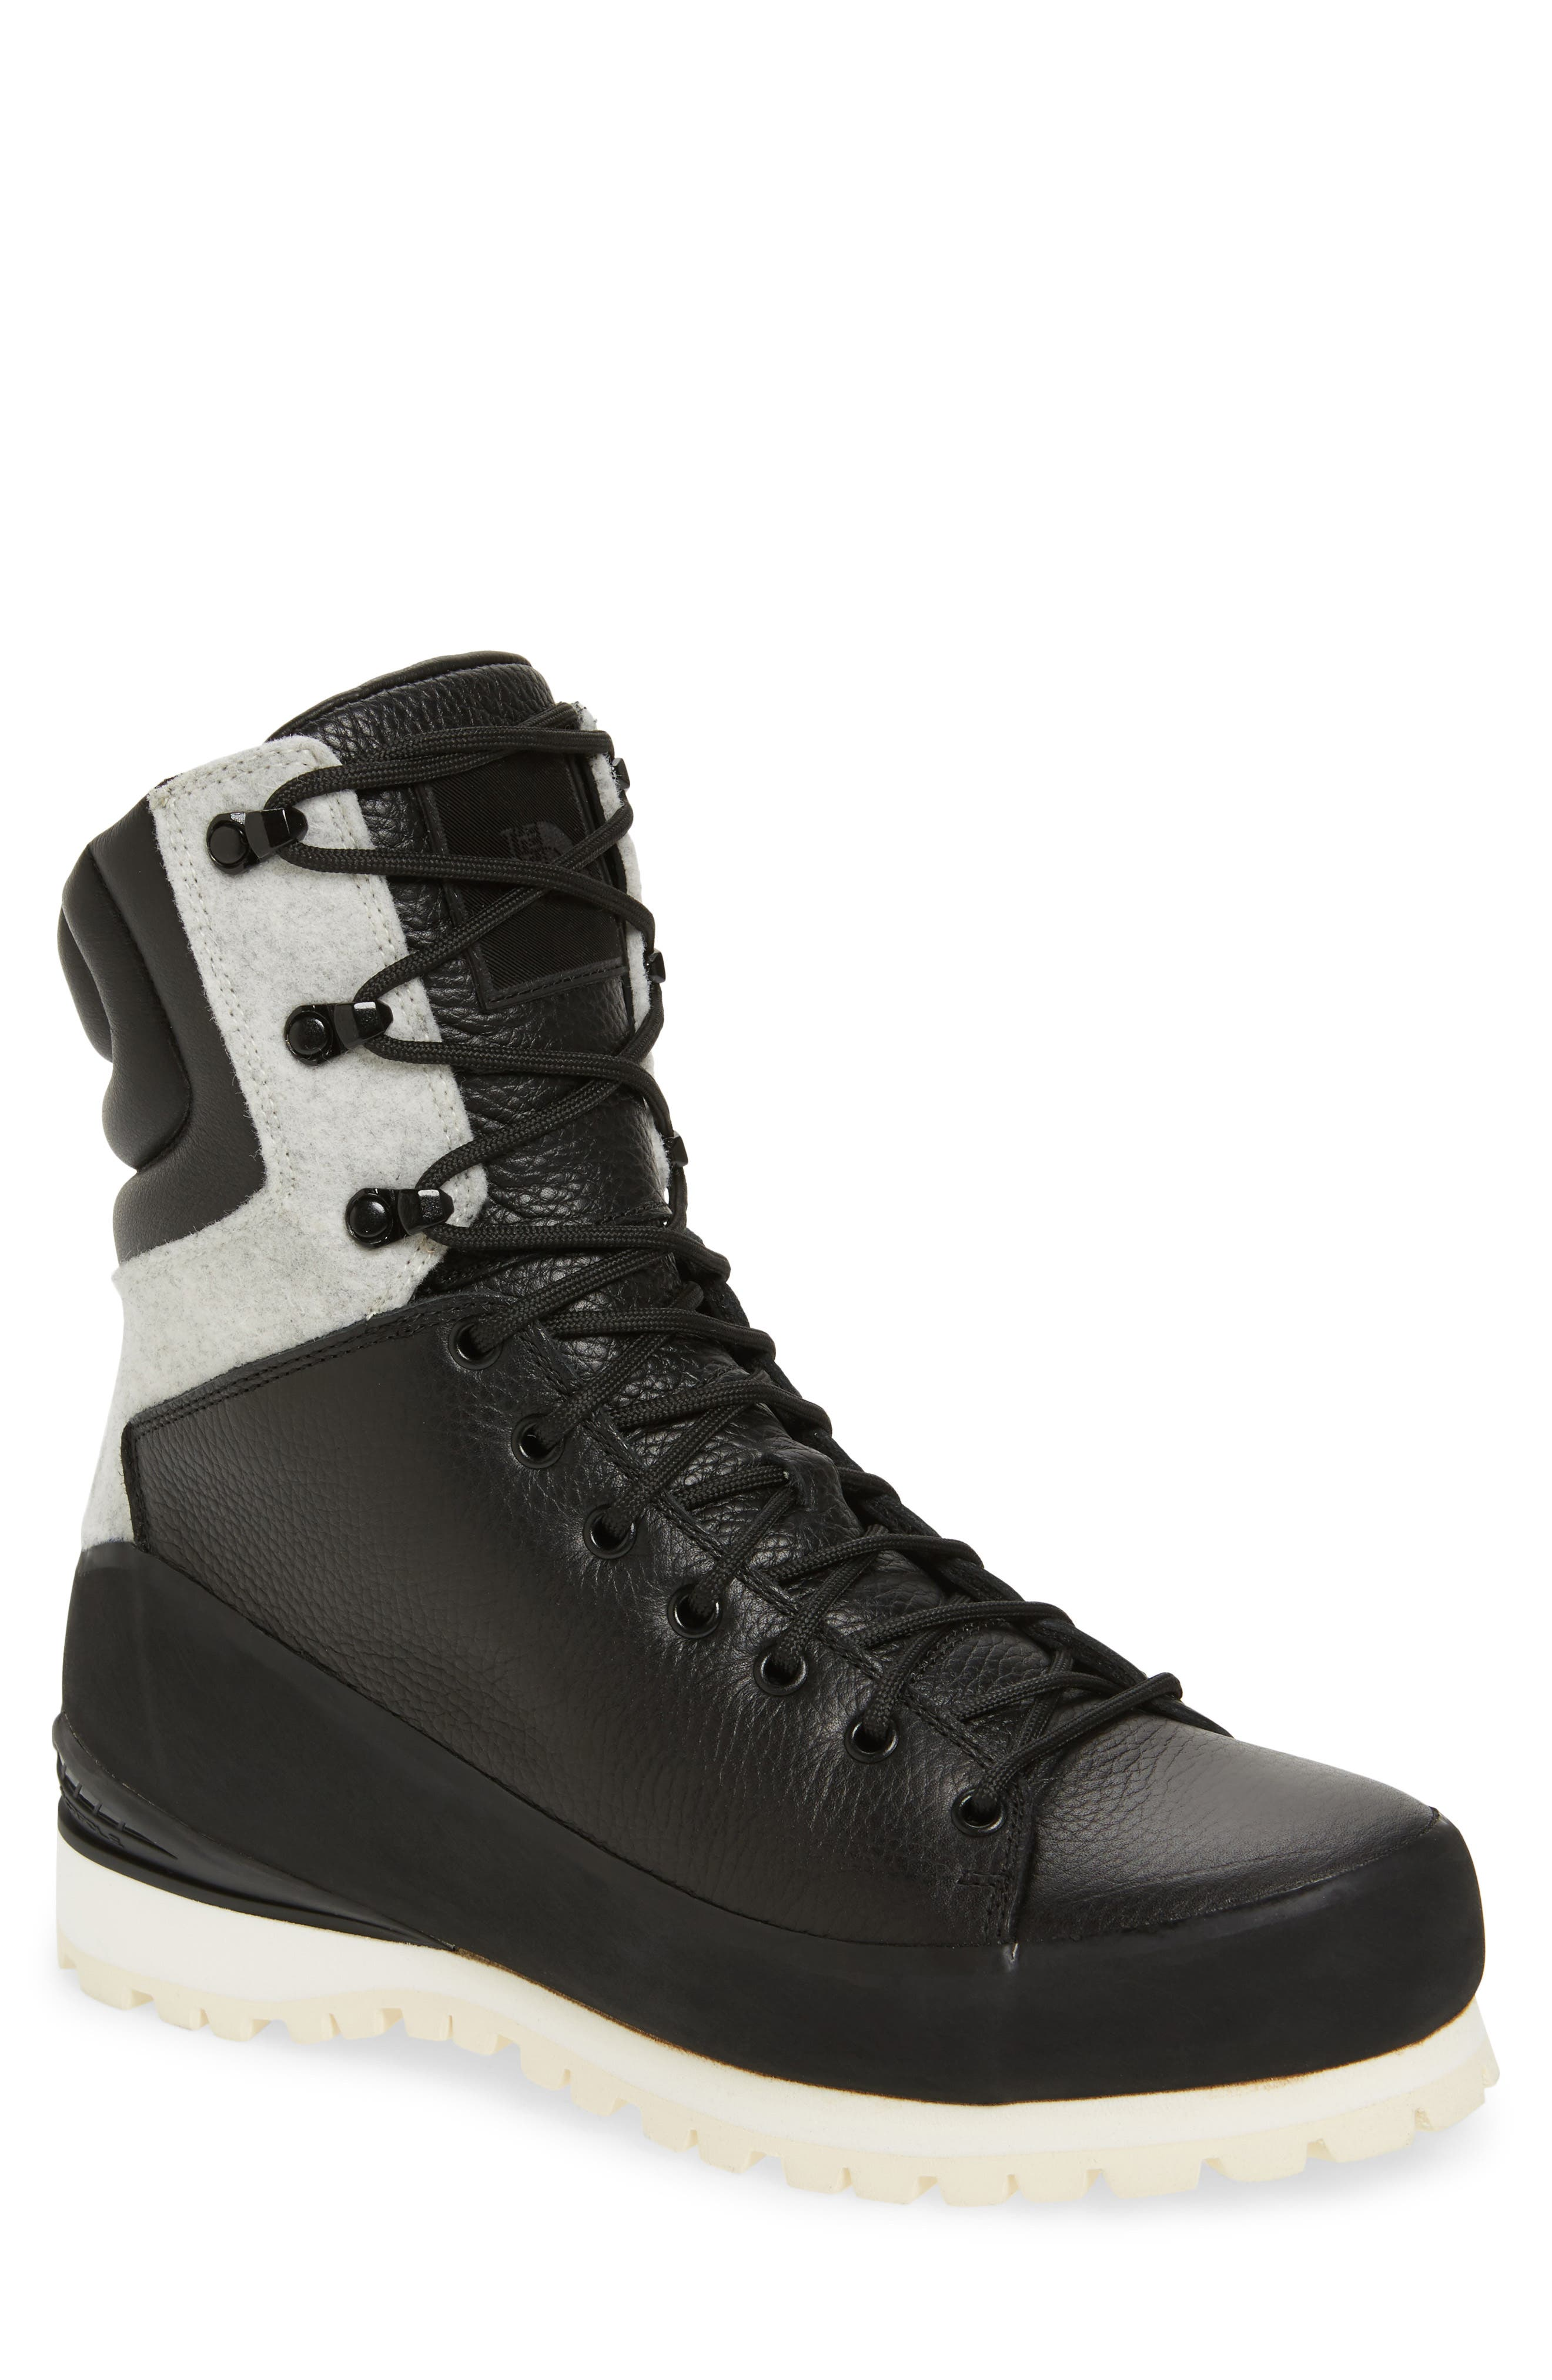 Alternate Image 1 Selected - The North Face Cryos Boot (Men)